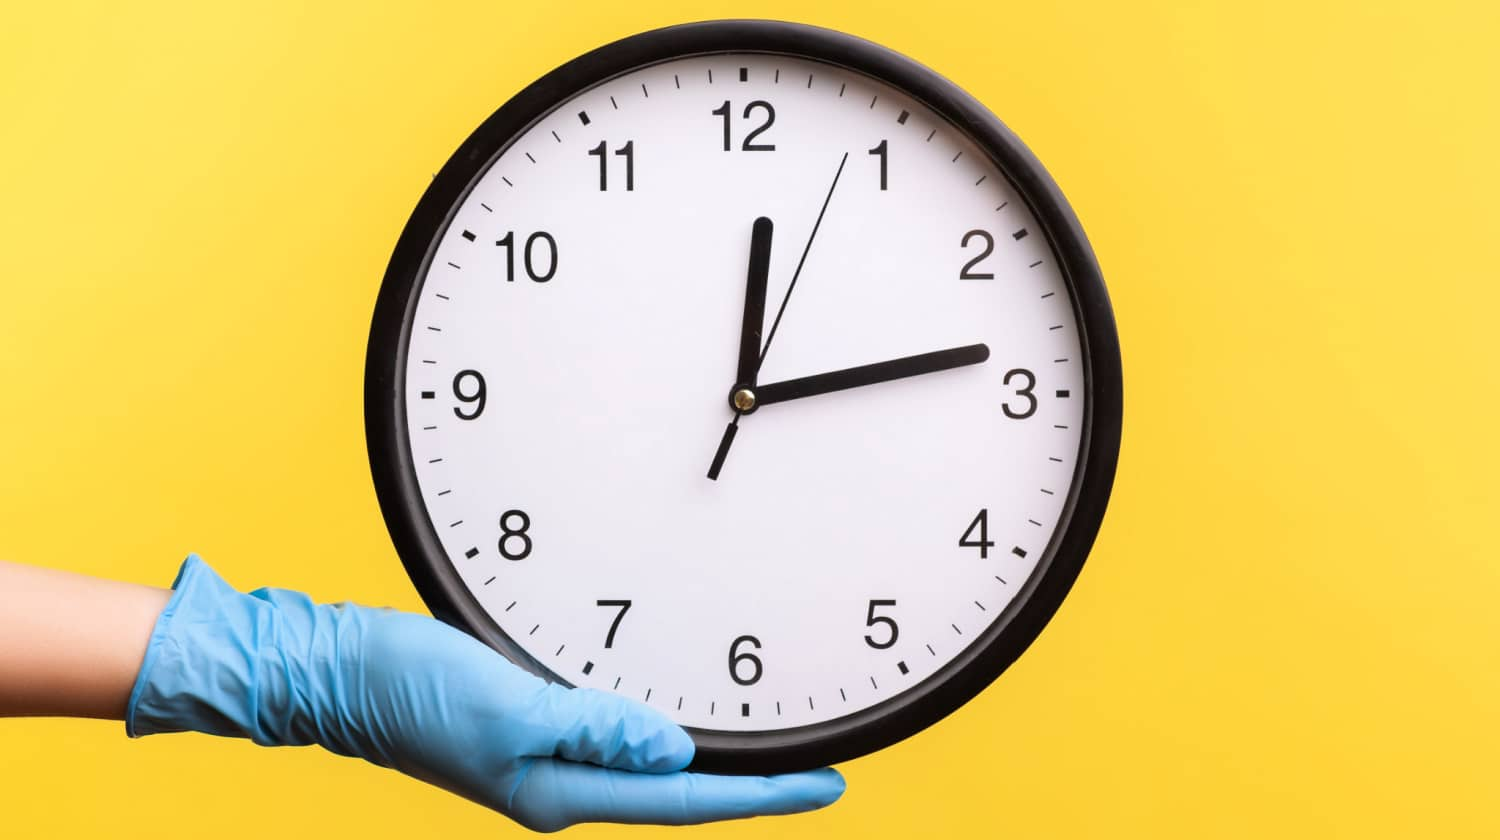 Hand in latex glove holding an analog wall clock